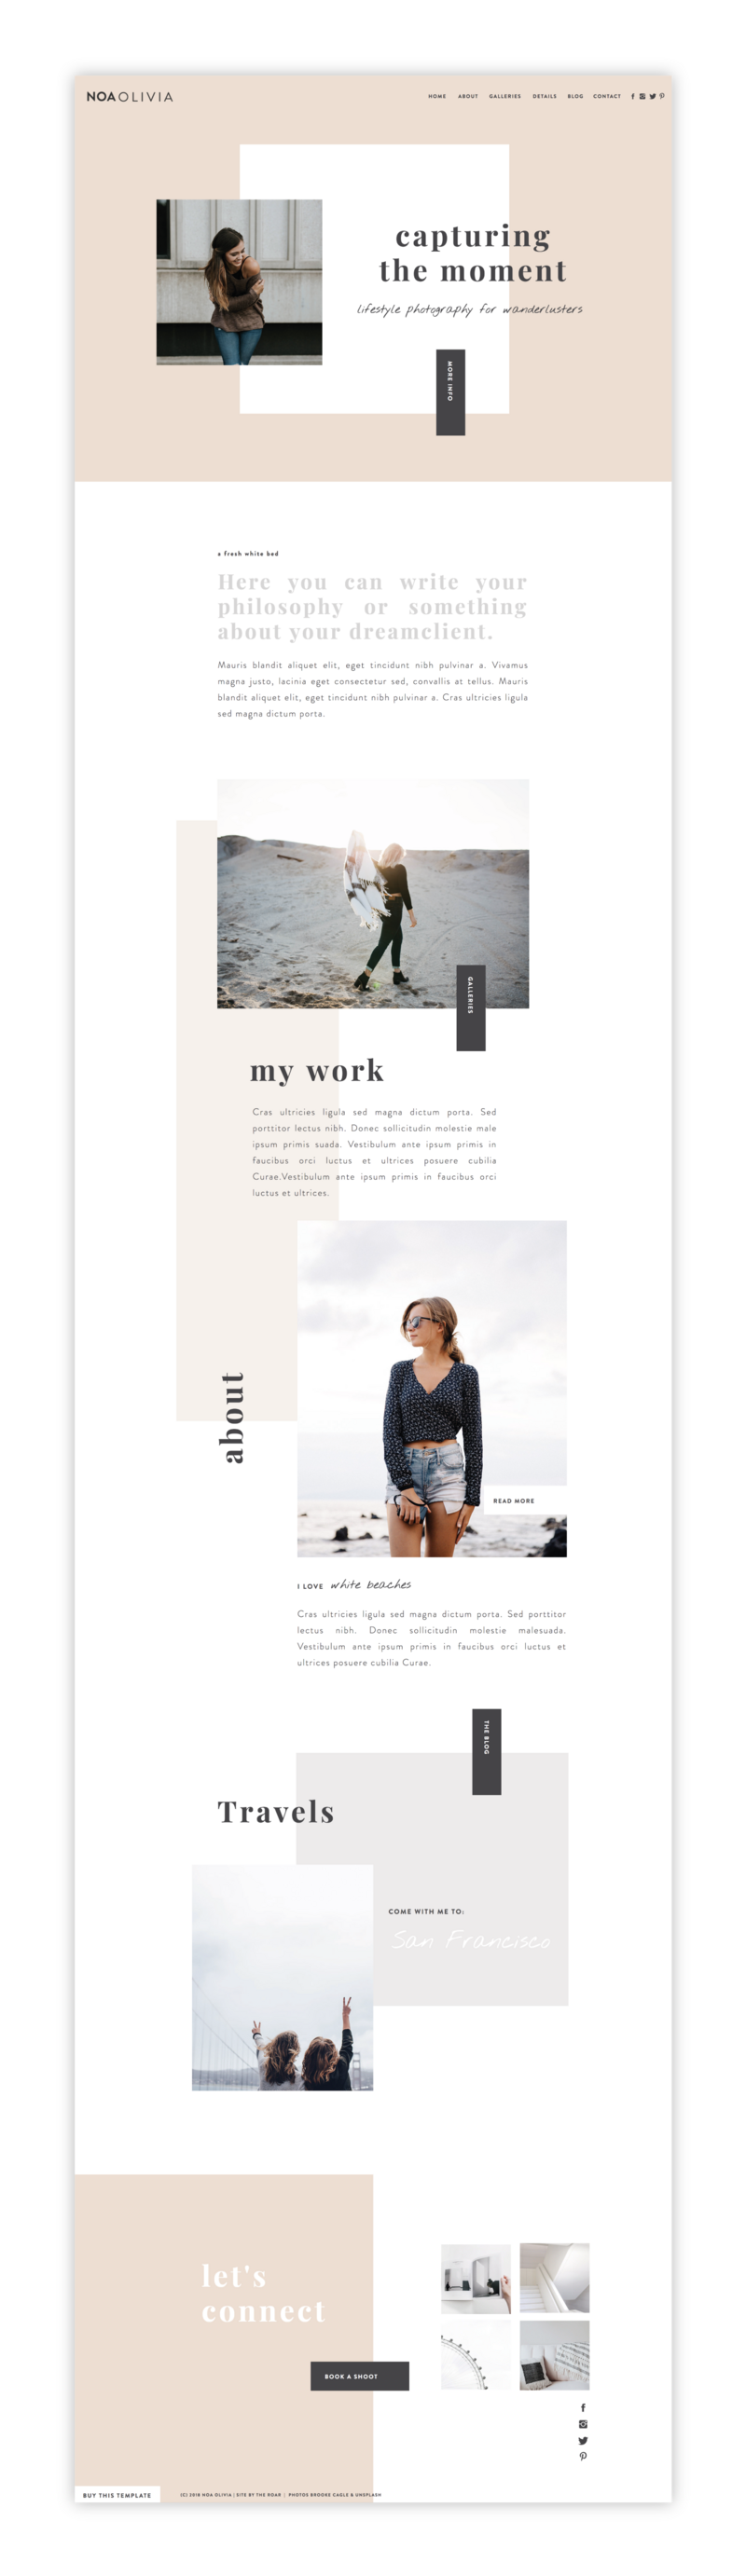 The-Roar-Showit-Web-Design-Template-Noa-Olivia-Shop-Image-Transparent